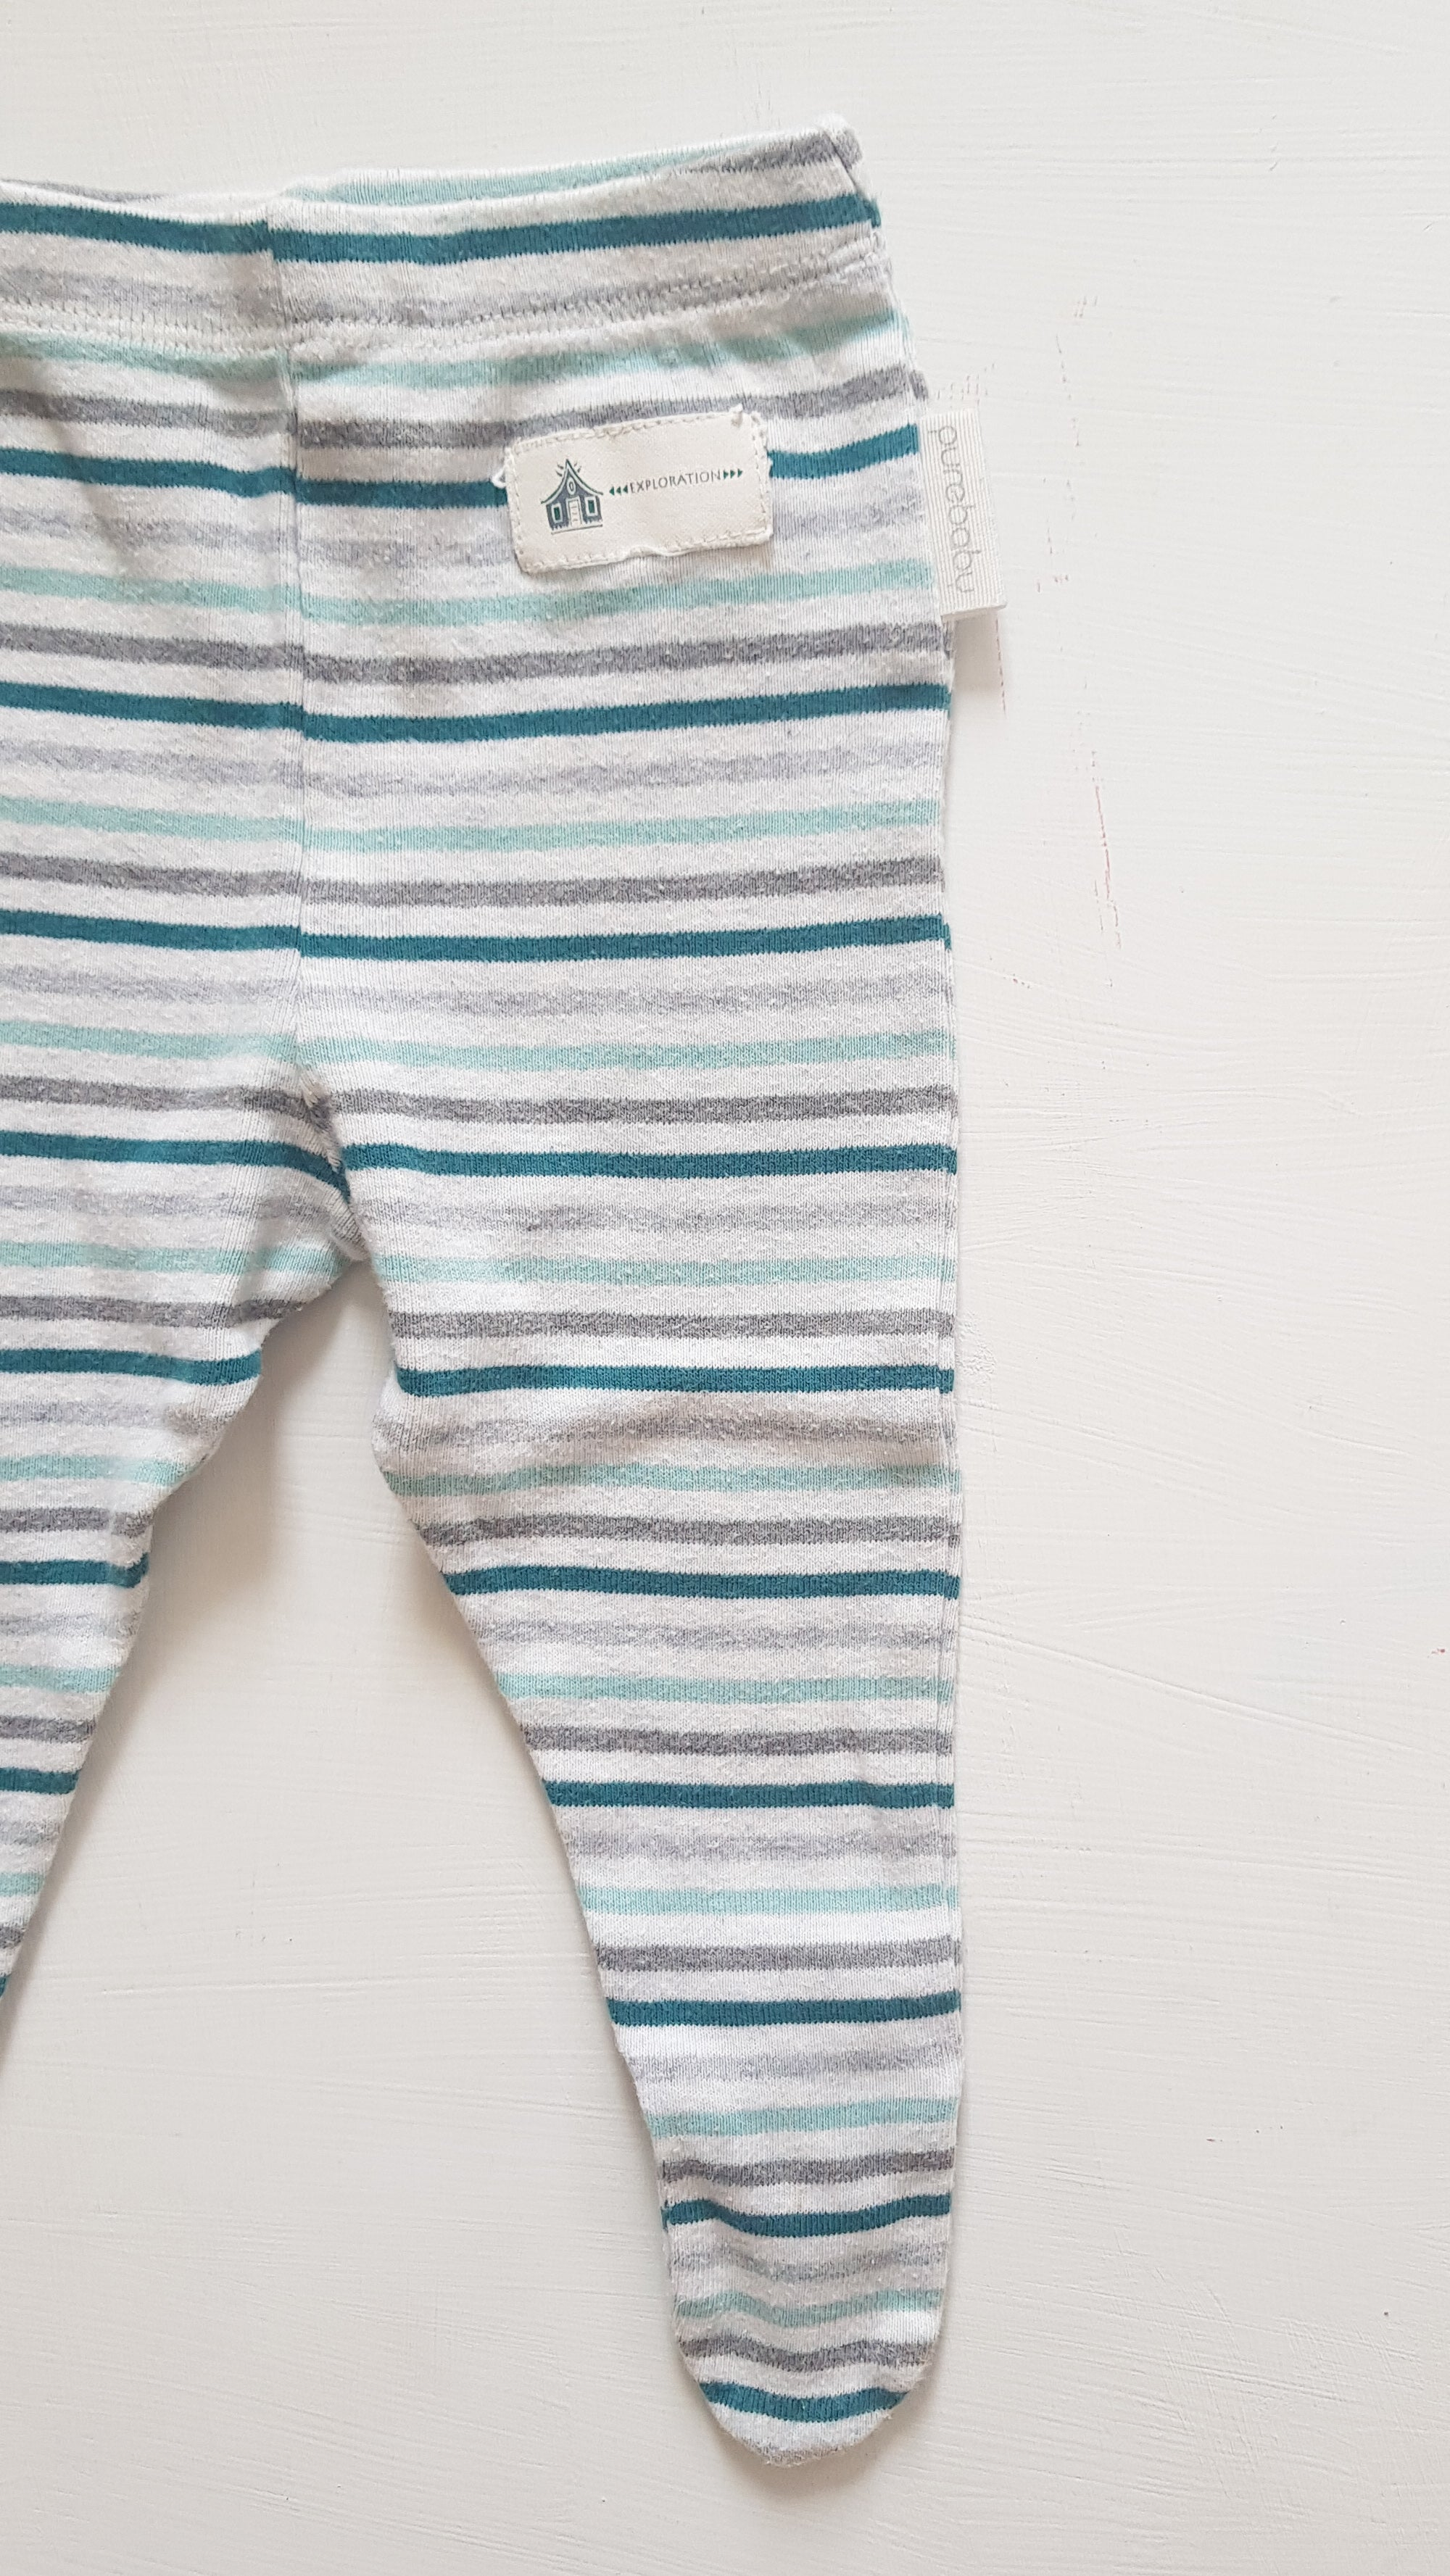 THRIFT Purebaby - Green Stripe Leggings Size 00